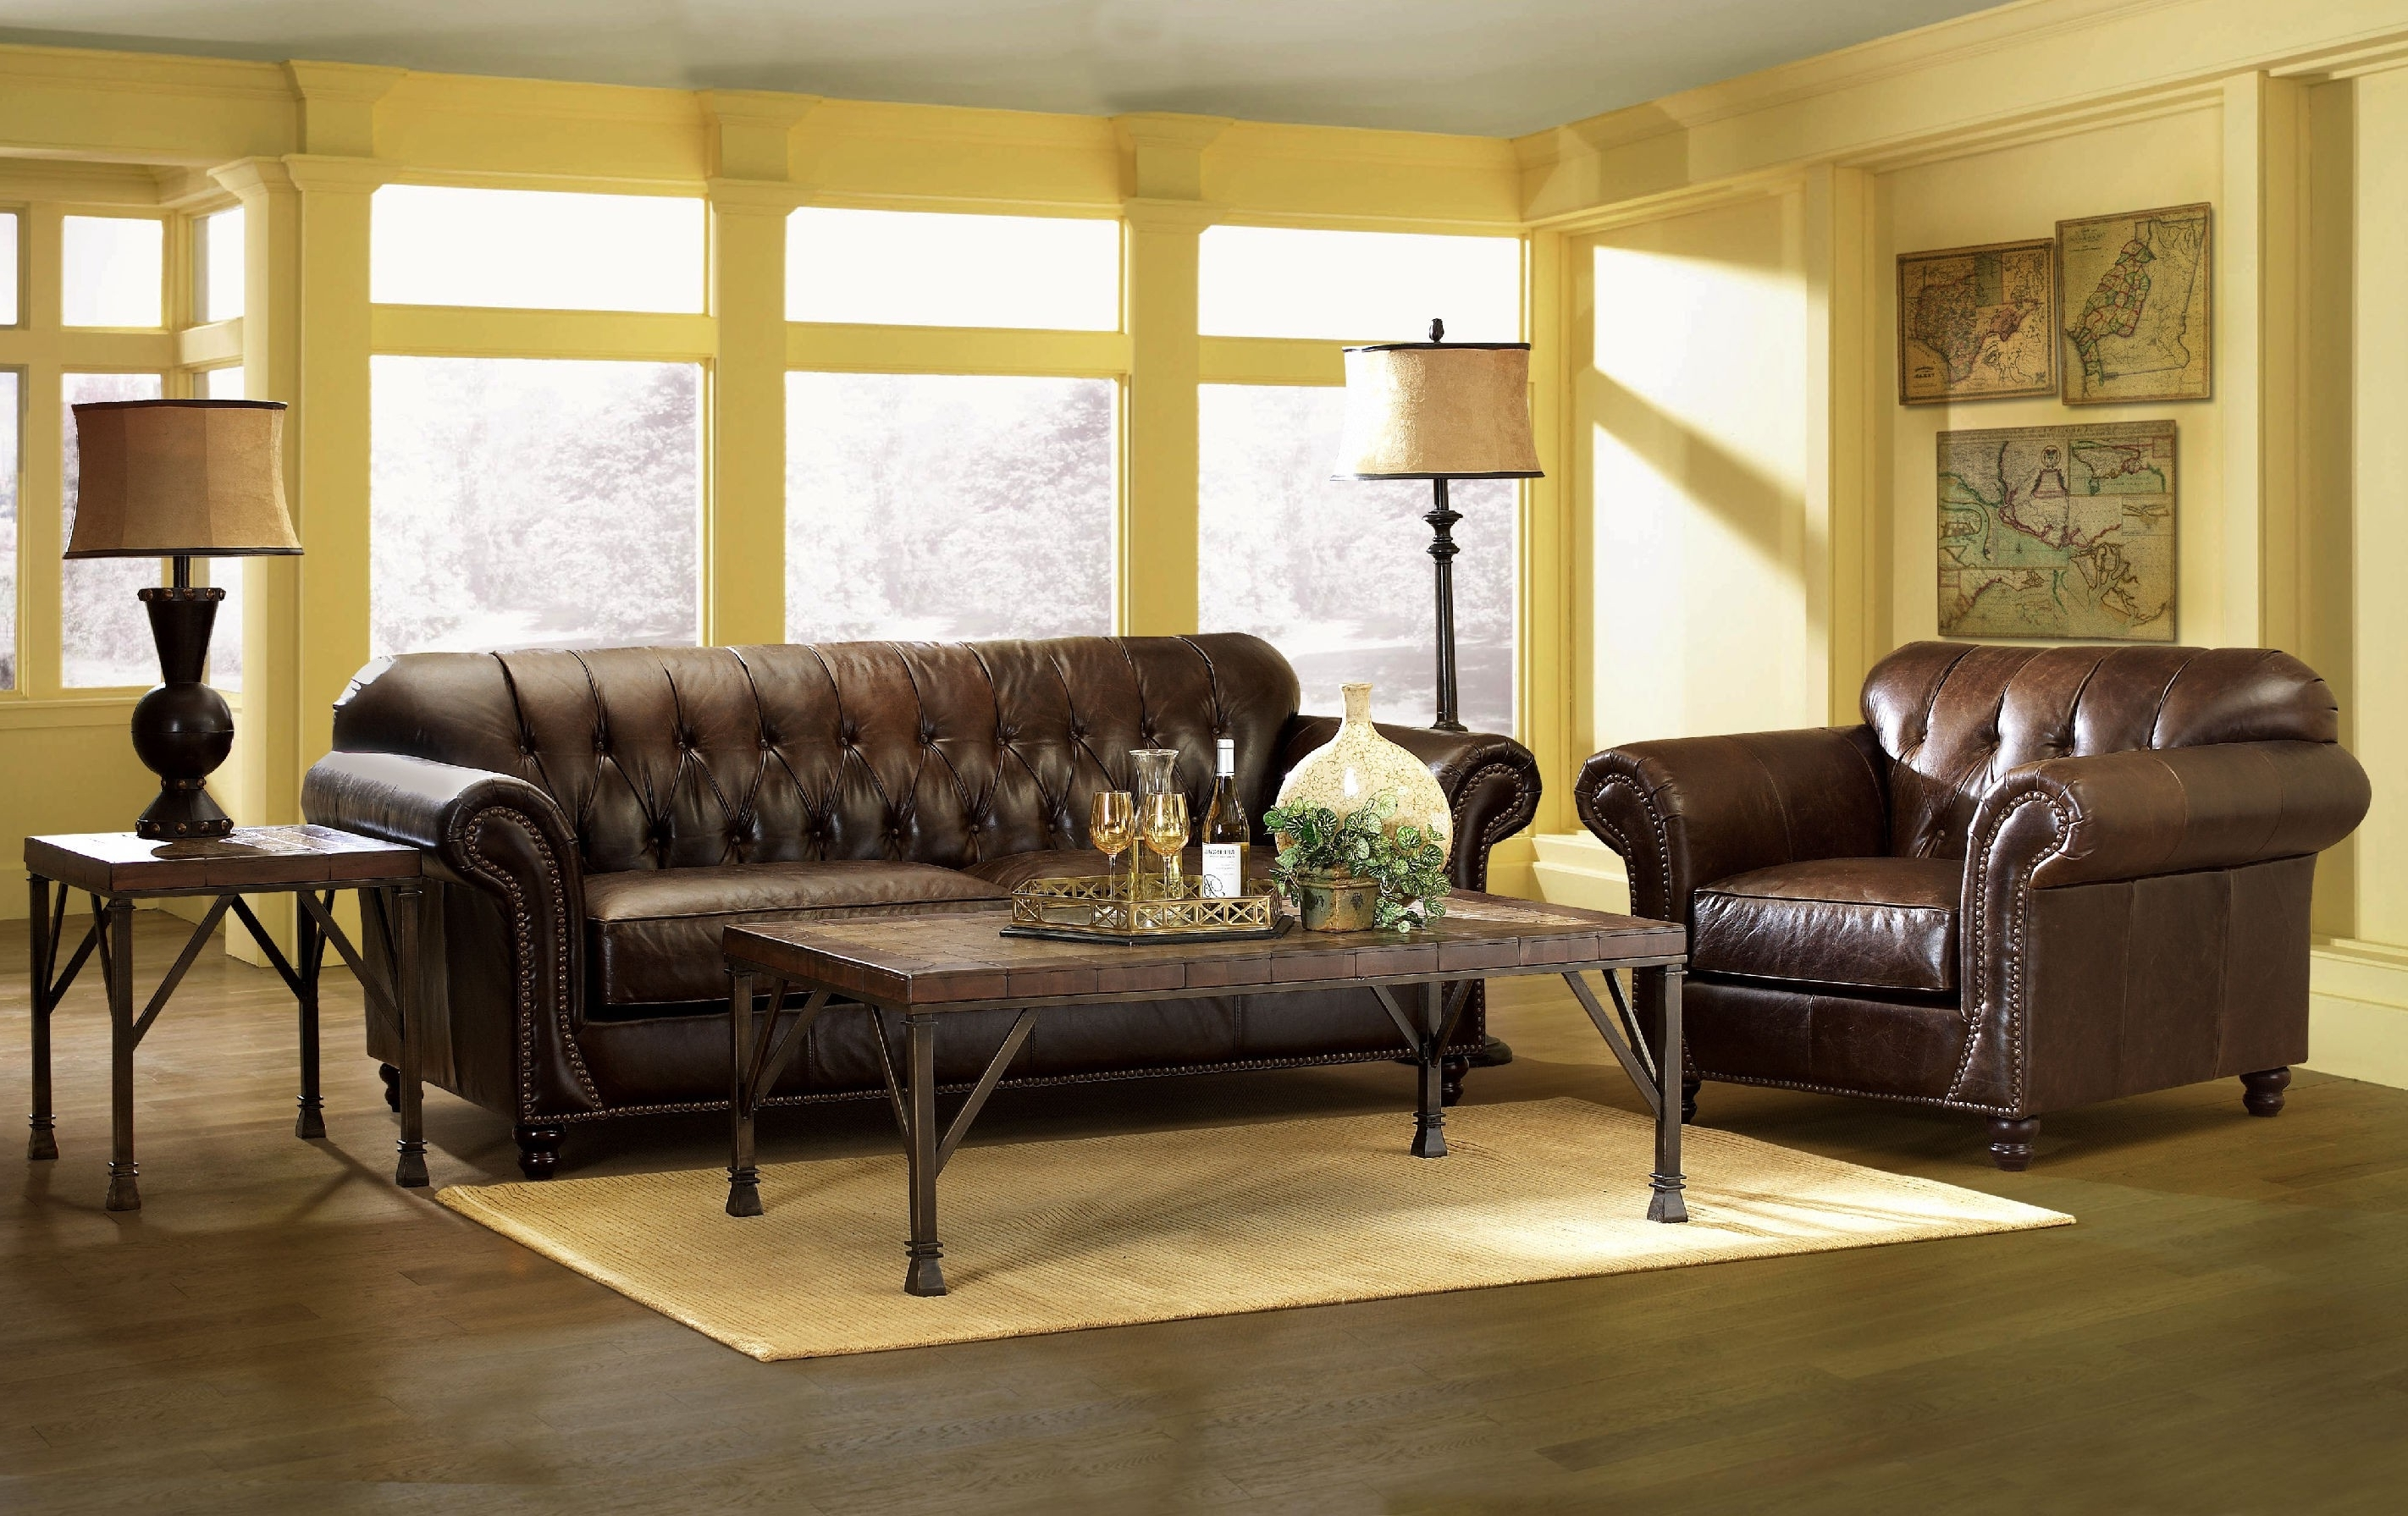 Fashionable Houzz Sectional Sofas For Leather Sectional Living Room Decor Tan Couch Ideas Sofa Sets (View 10 of 20)